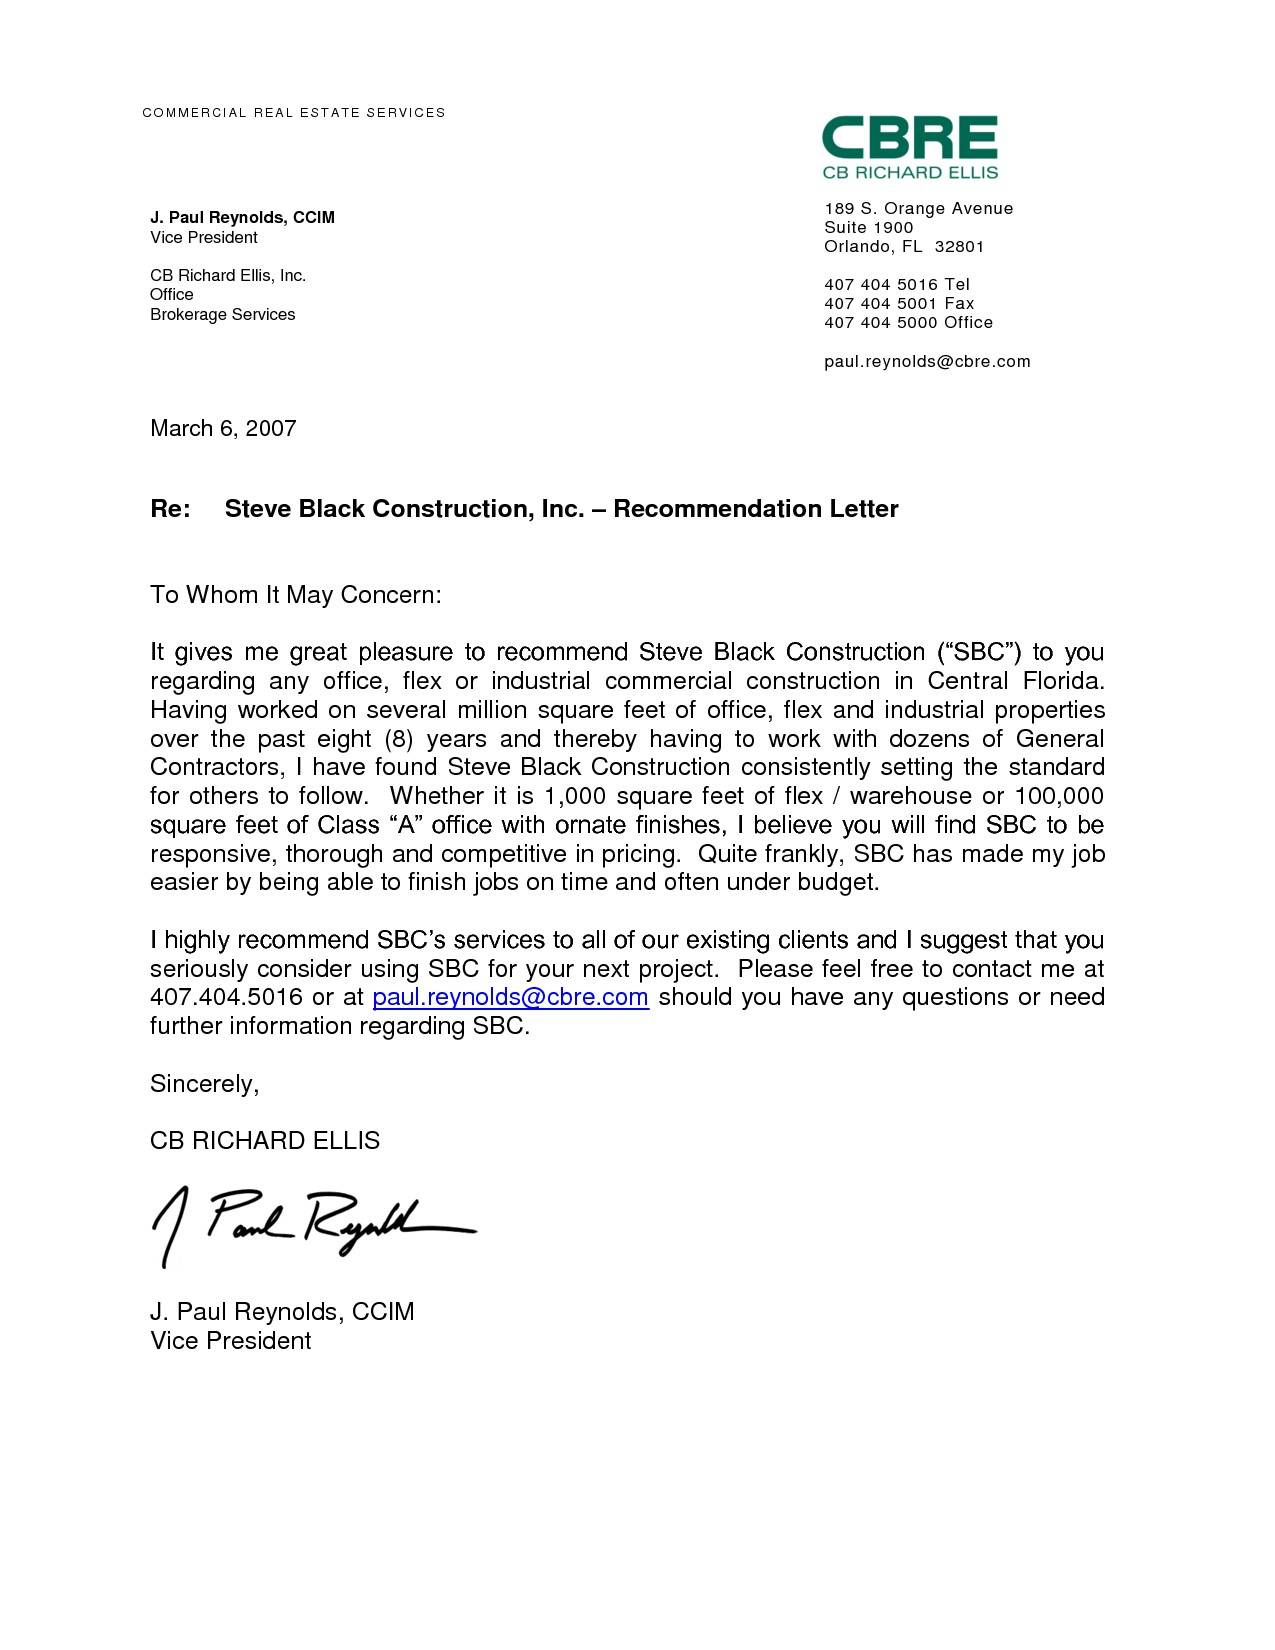 Real Estate Recommendation Letter Template